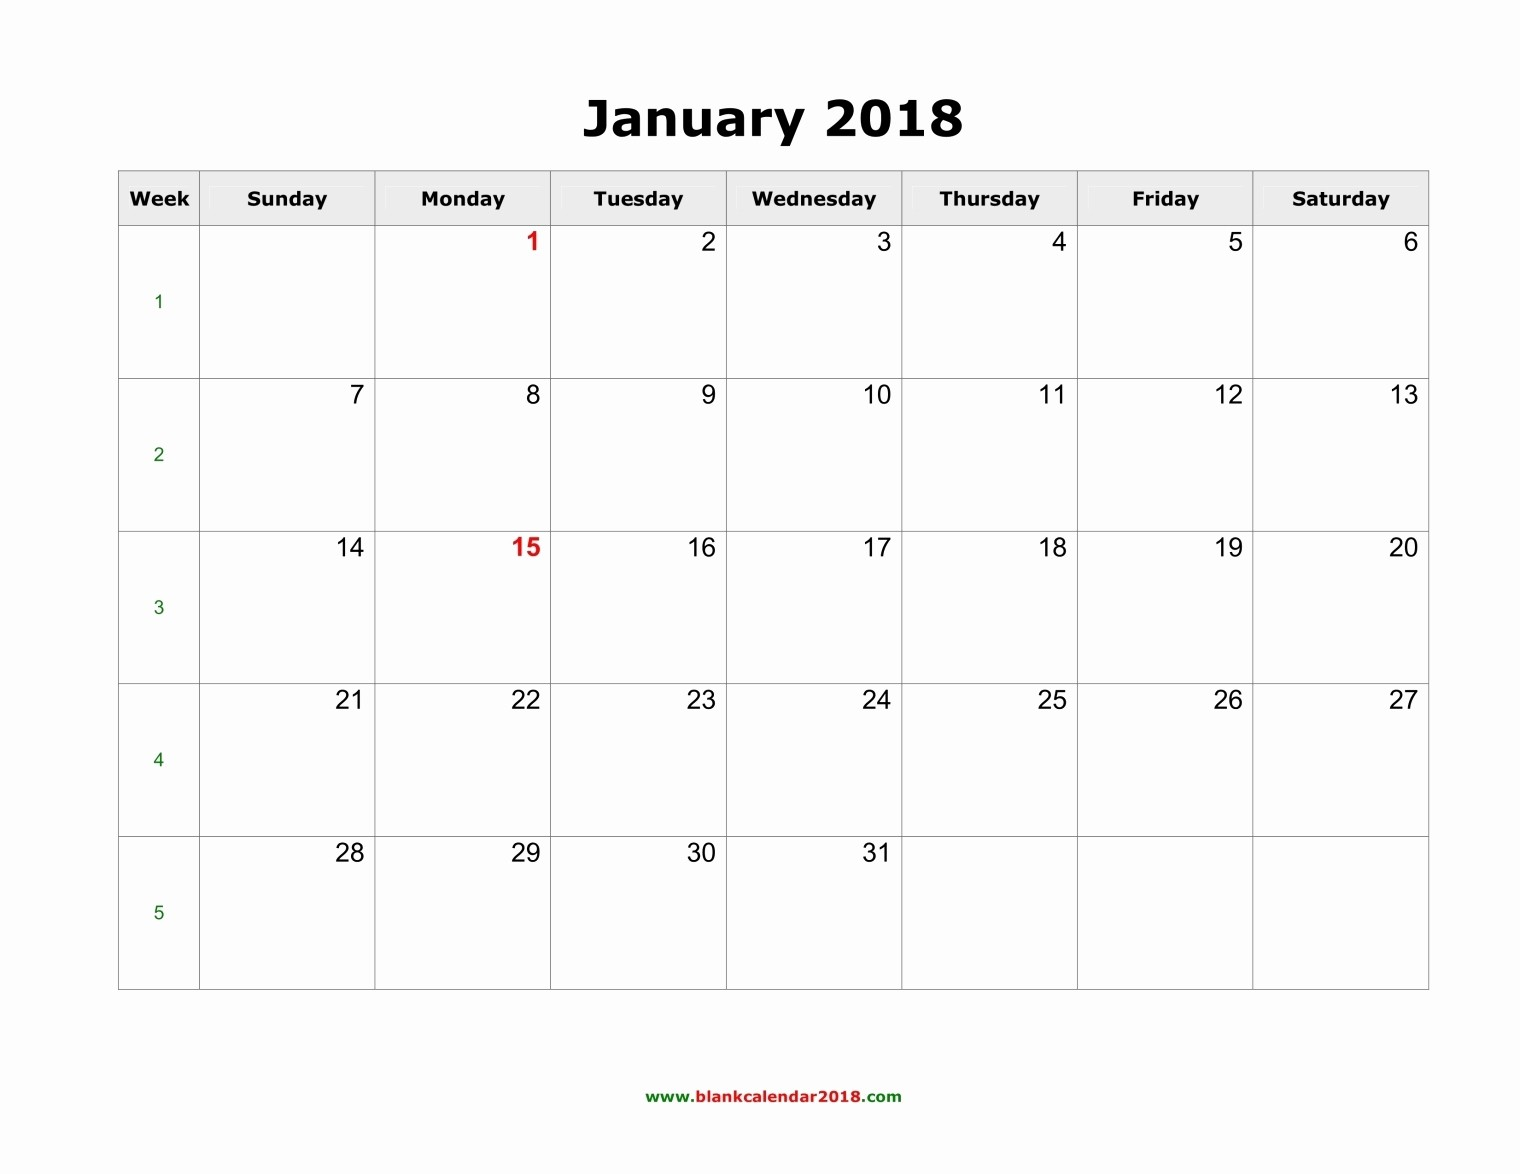 Month by Month Calendar Template Beautiful 2018 Monthly Calendar Template